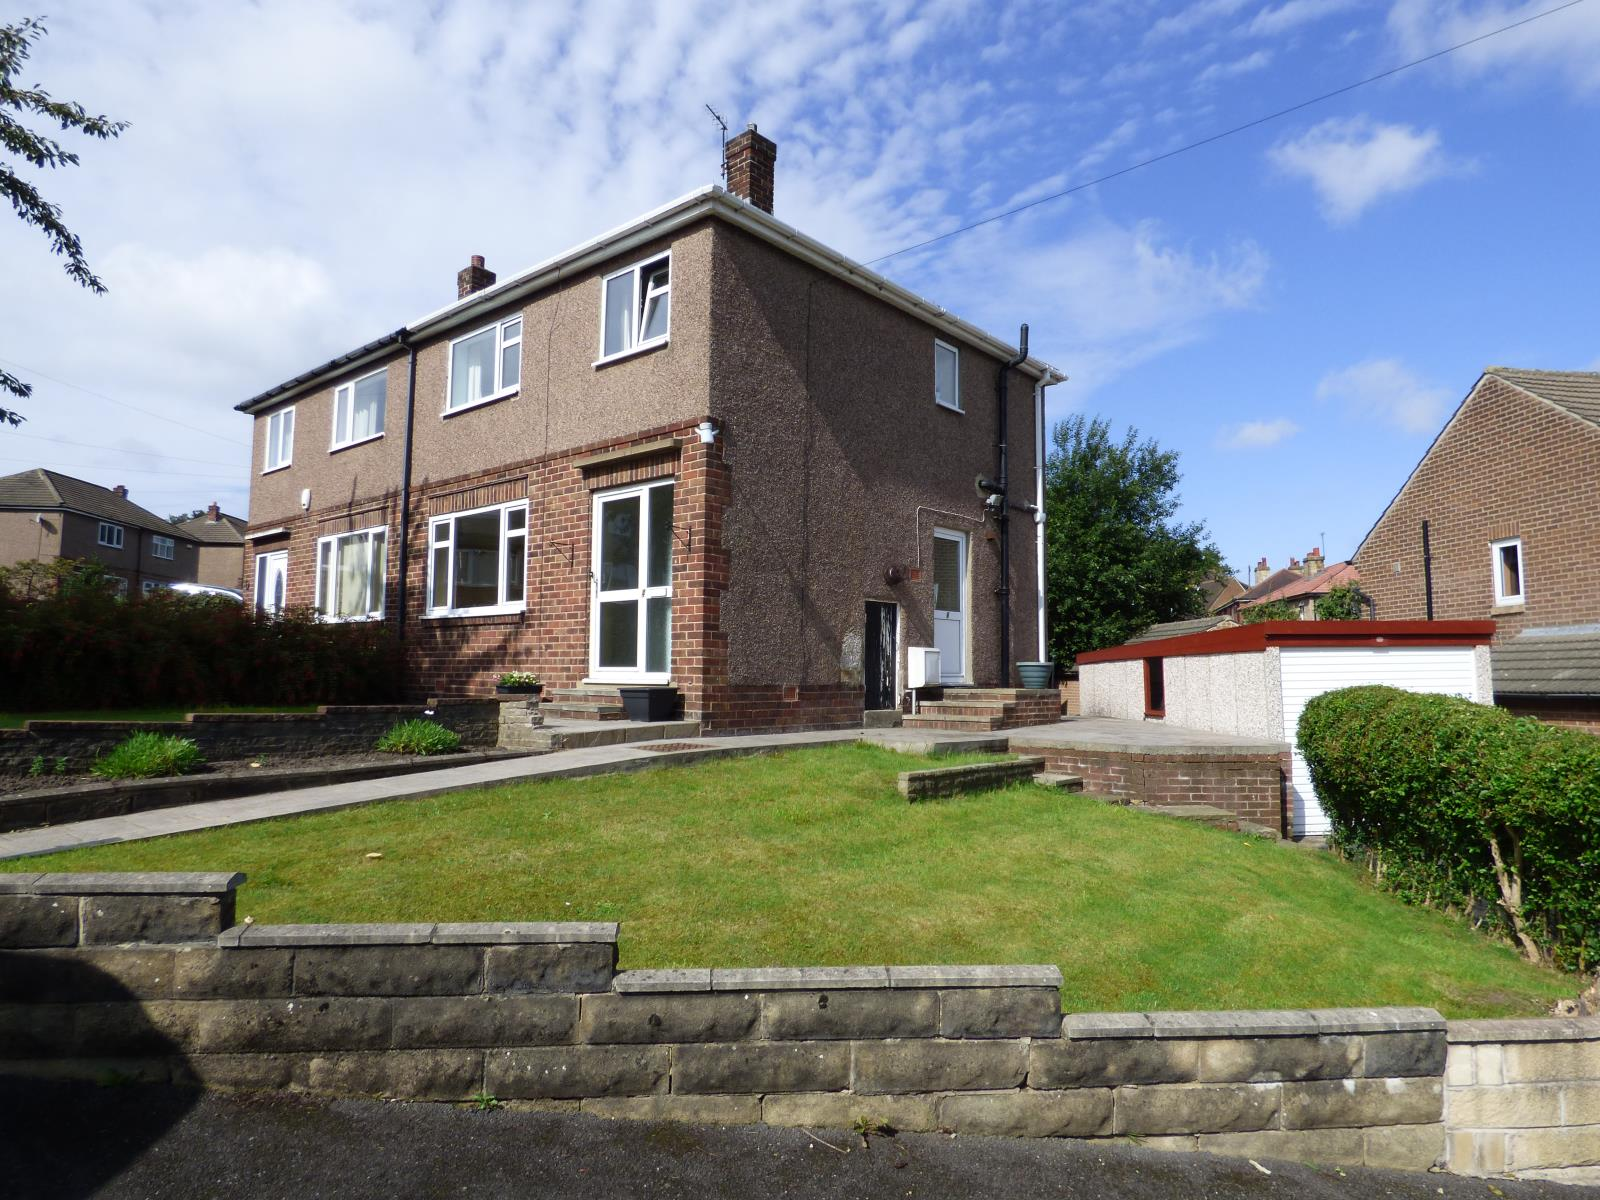 Mountfield Avenue, Waterloo, Huddersfield, HD5